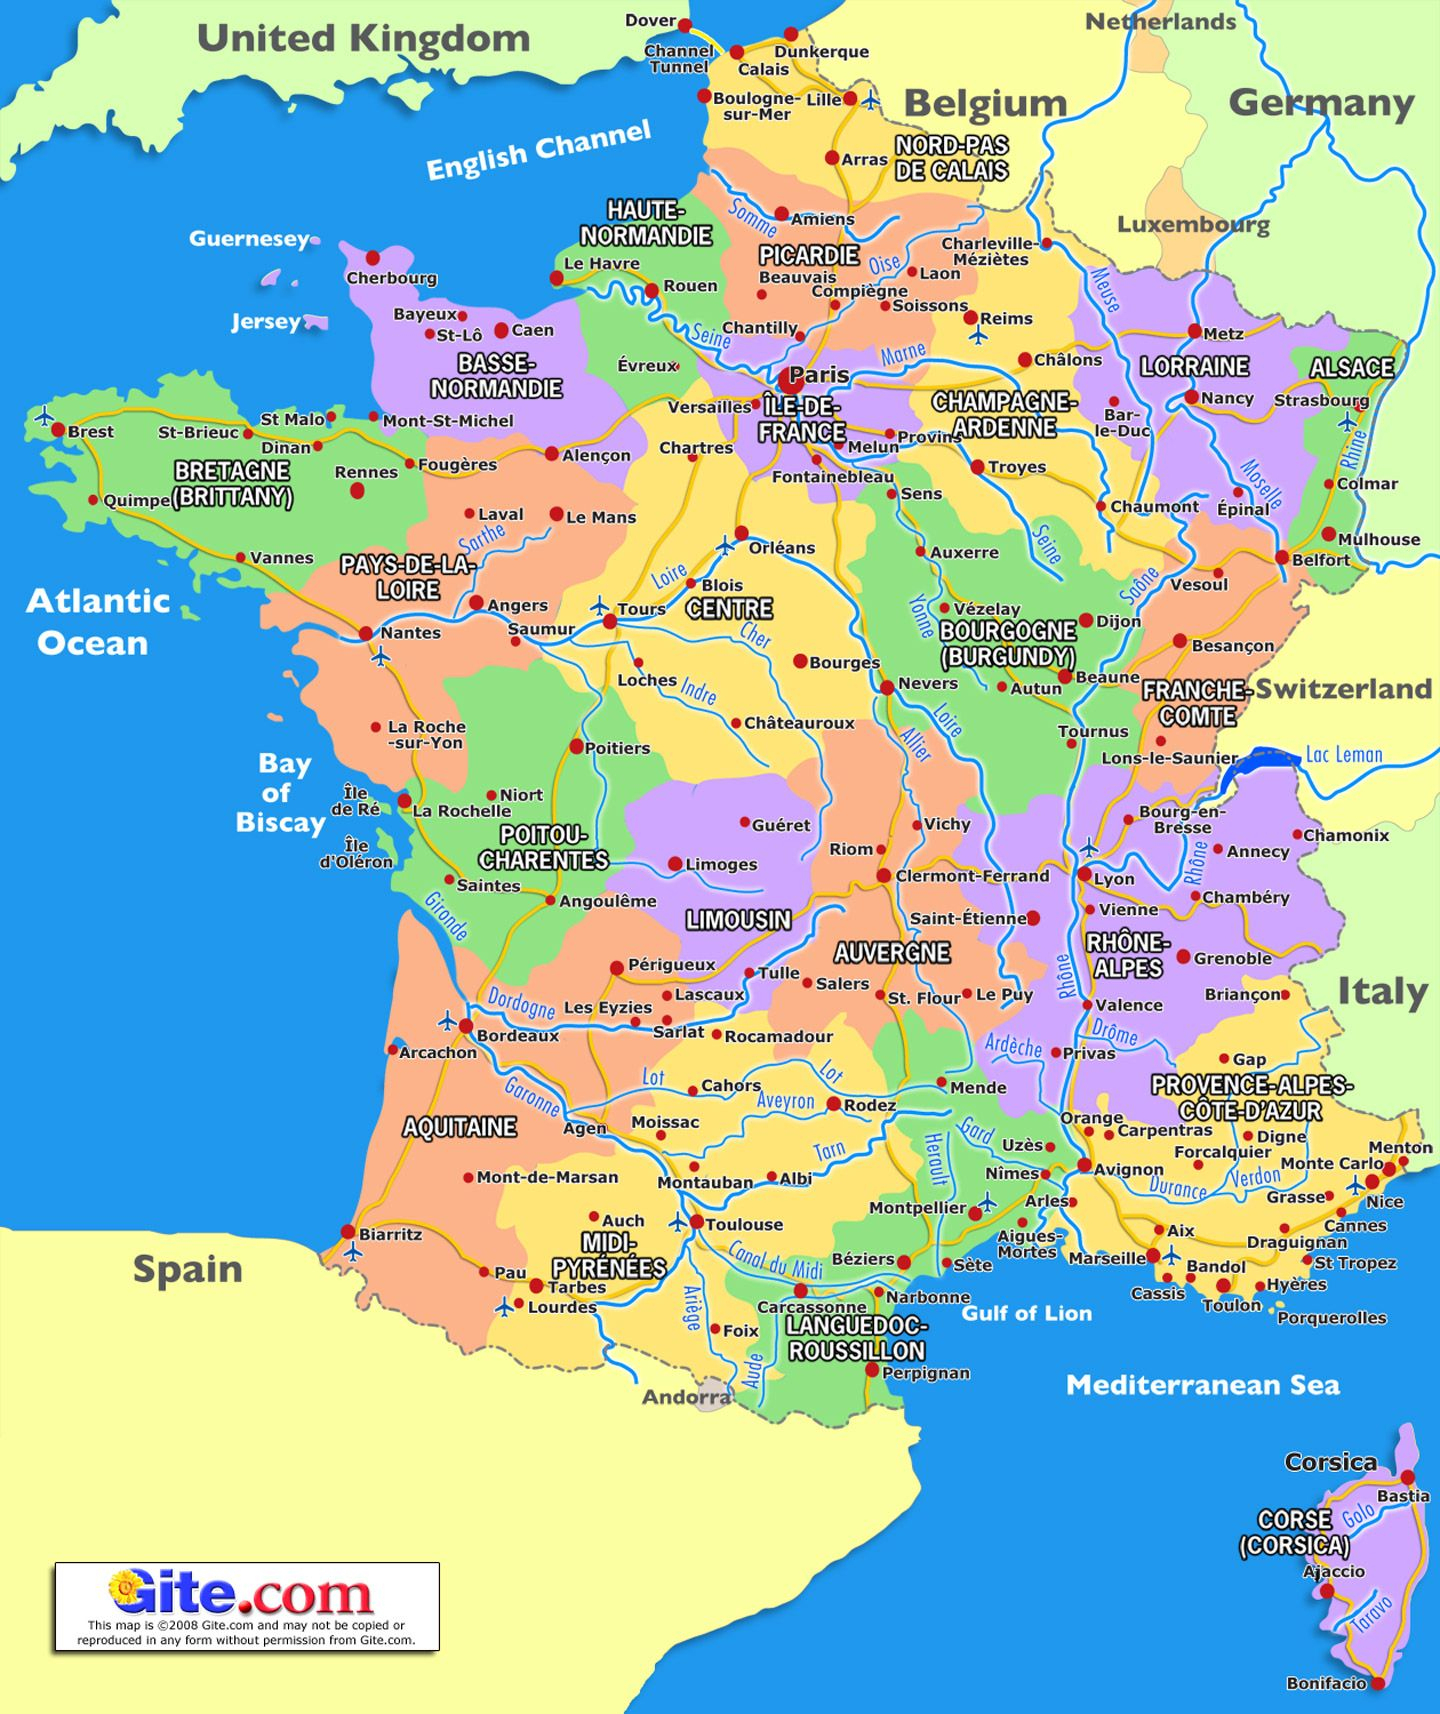 19Bd Carte France Region | Wiring Resources concernant Carte De La France Région